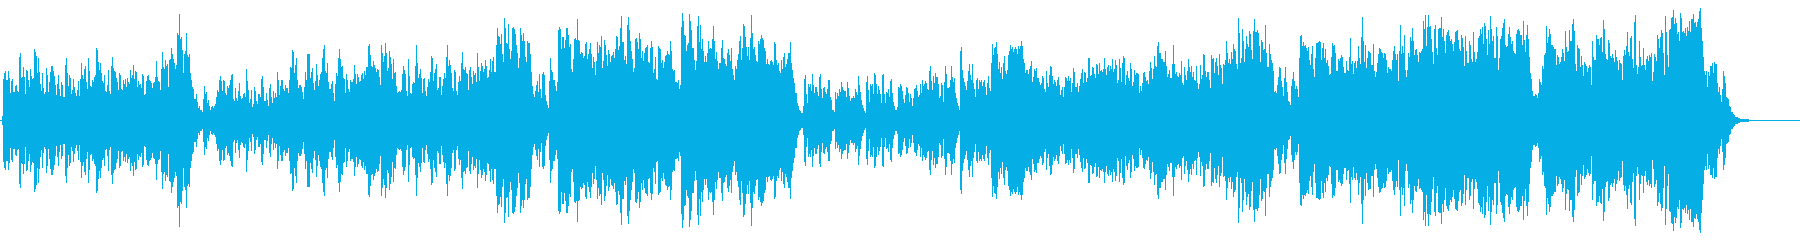 CANDY FACTORY's reproduced waveform